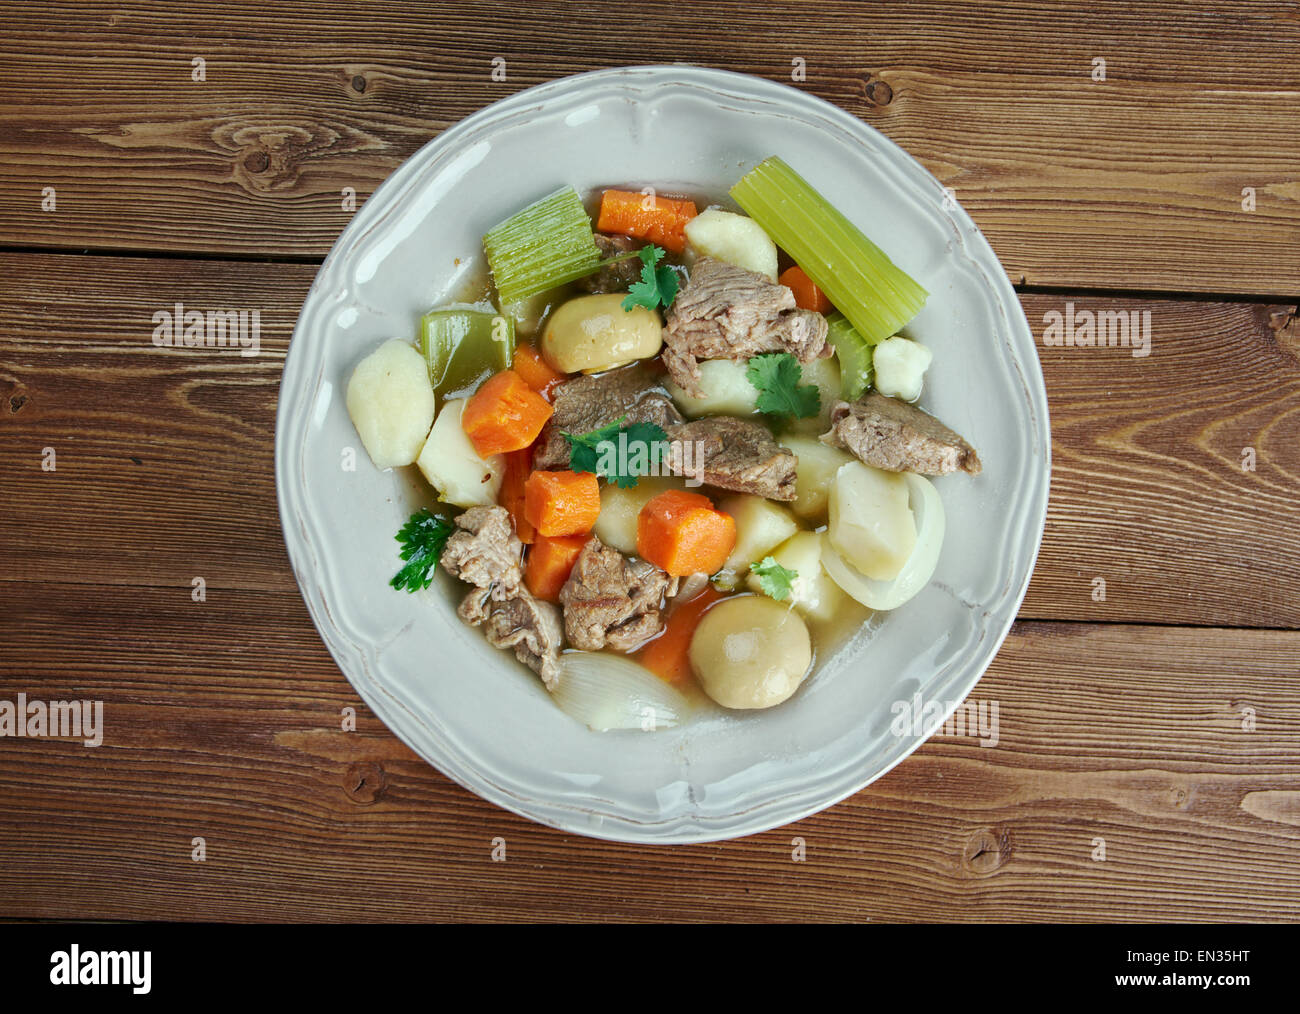 Skirts and kidneys - Irish stew made from pork and pork kidneys. Stock Photo